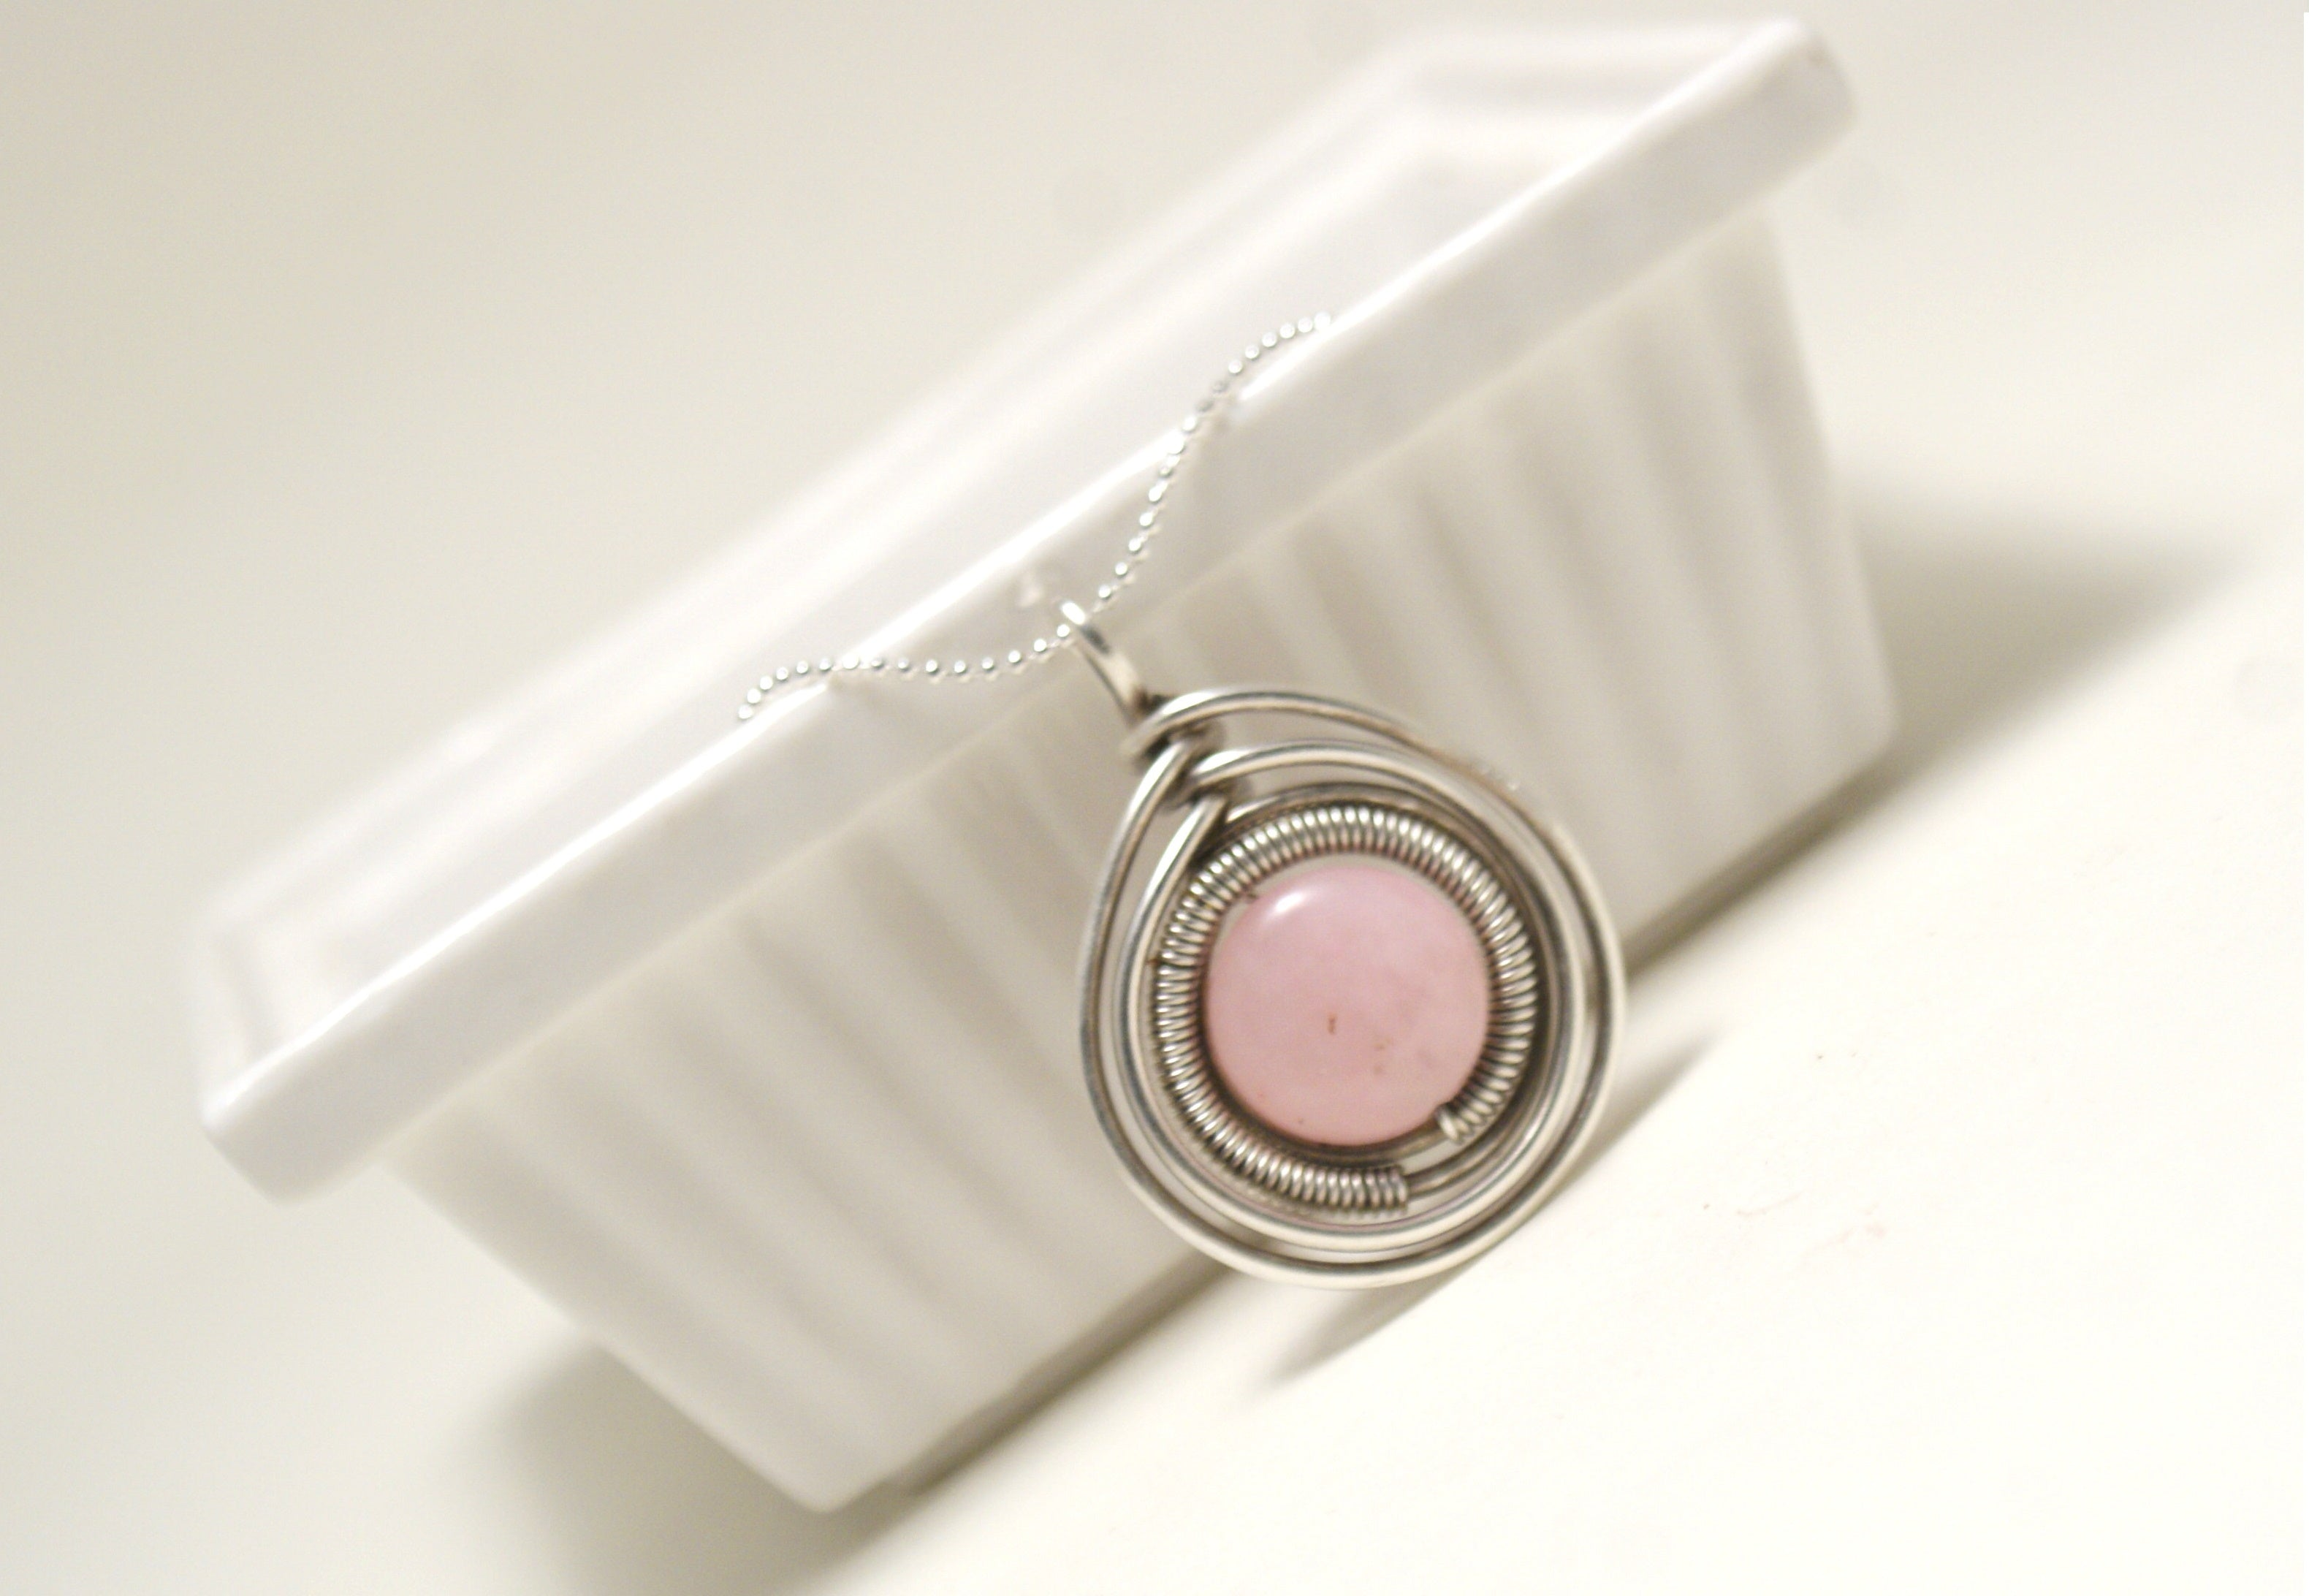 Handmade Rose Quartz Pendant Necklace - Babazen